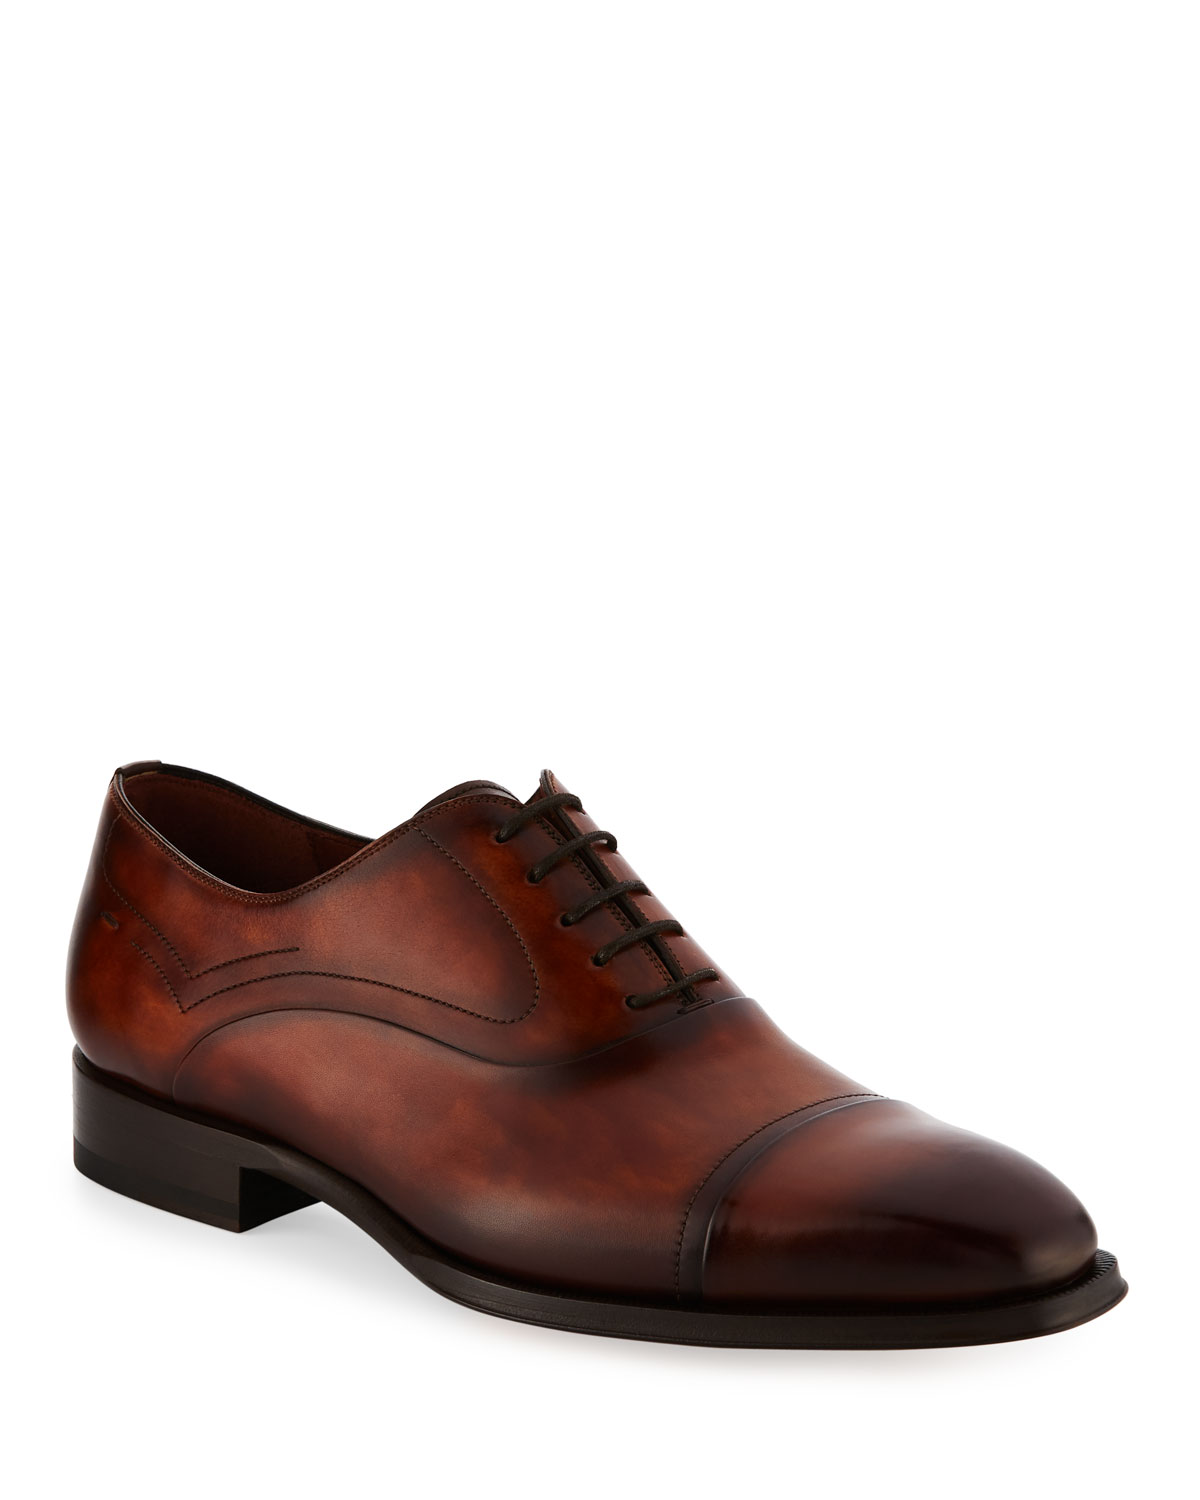 cffc27858fb43 Magnanni for Neiman Marcus Cap-Toe Leather Oxford Shoe